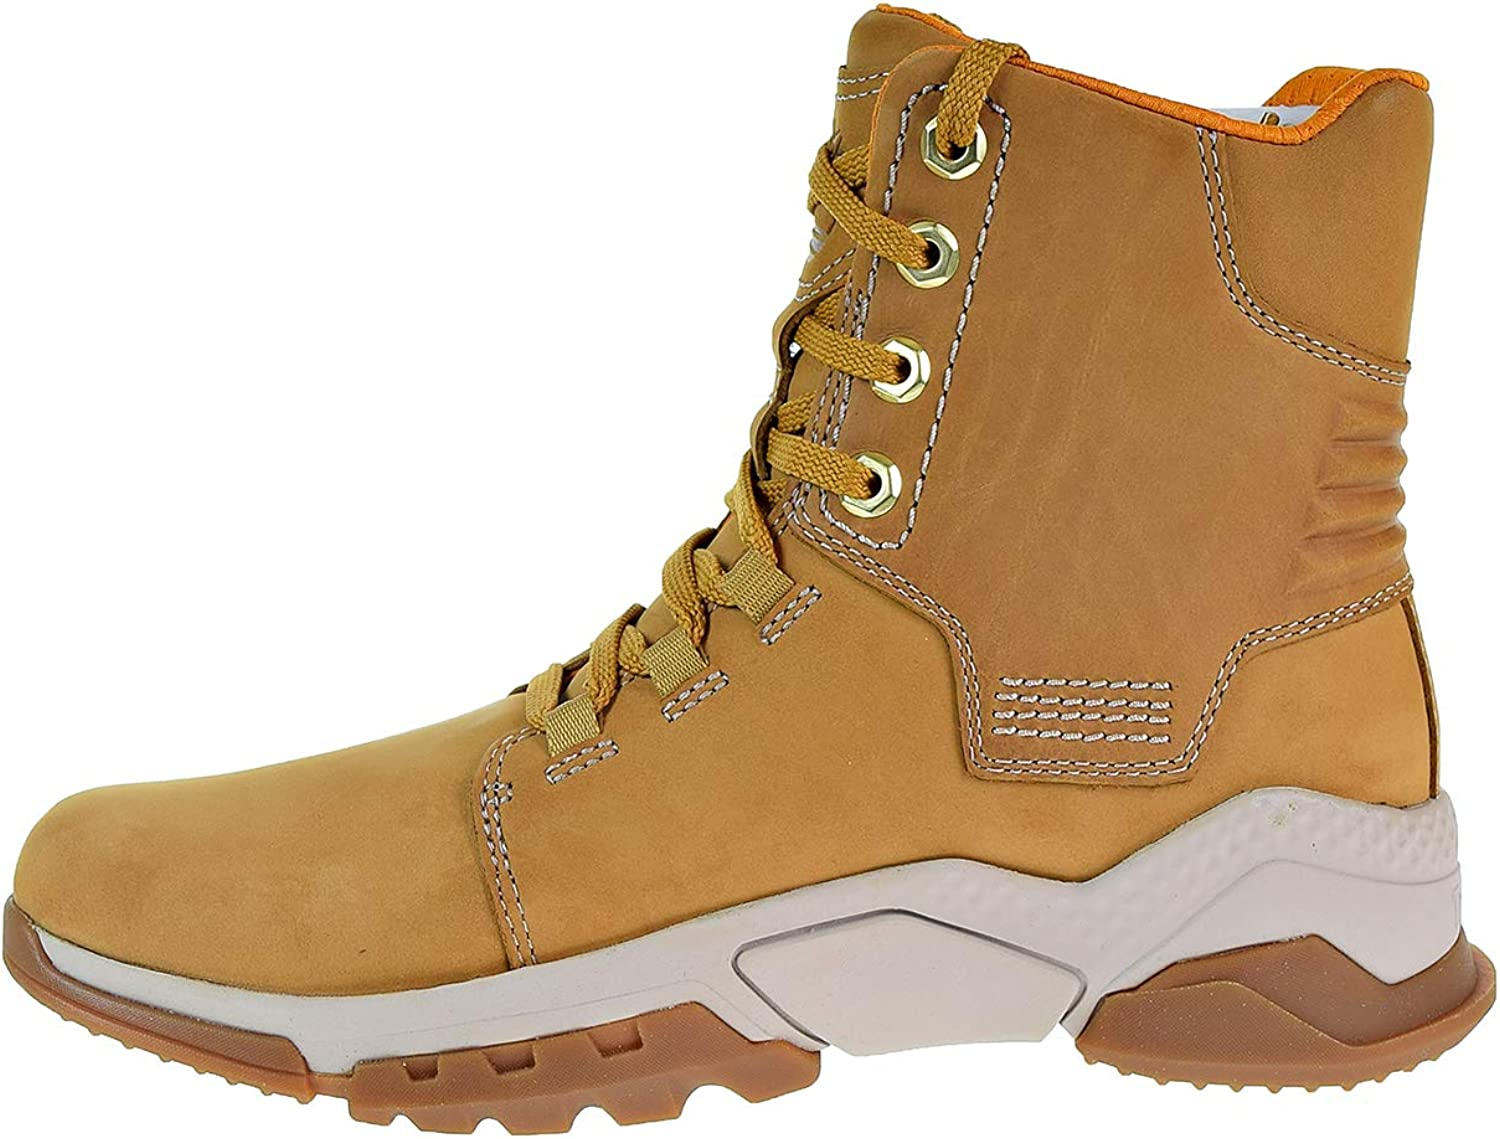 Timberland City Force Reveal Men's Boots Wheat Nubuck